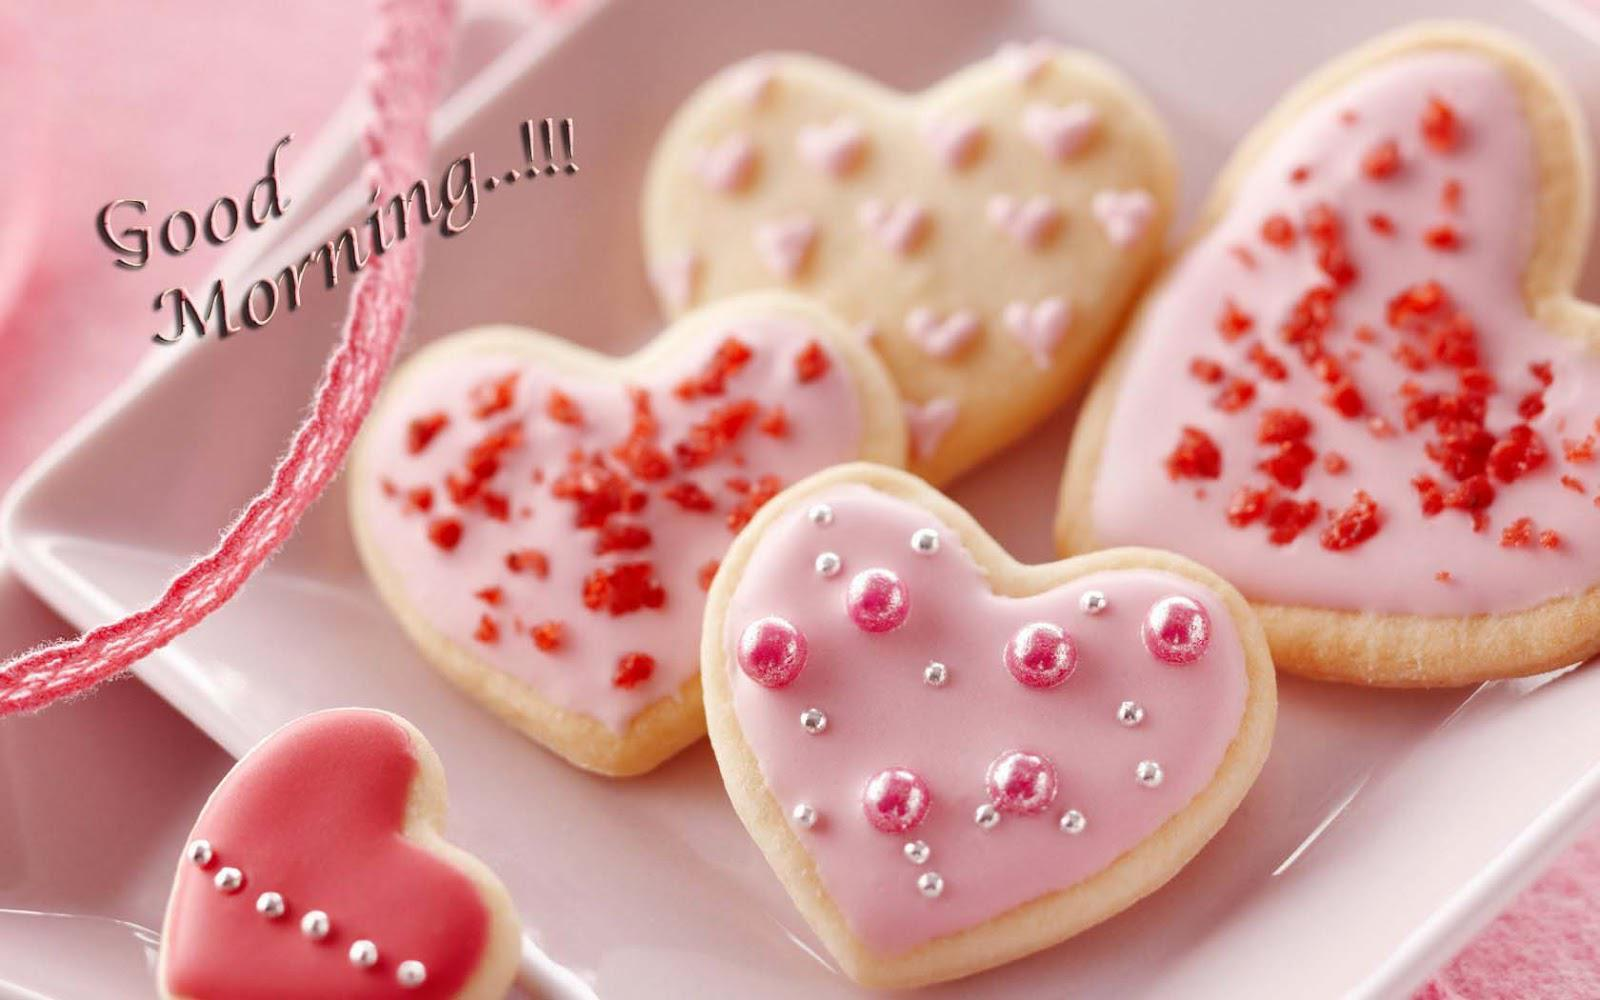 6 Best Cute Good Morning Love Image Messages For Lovers Romance In